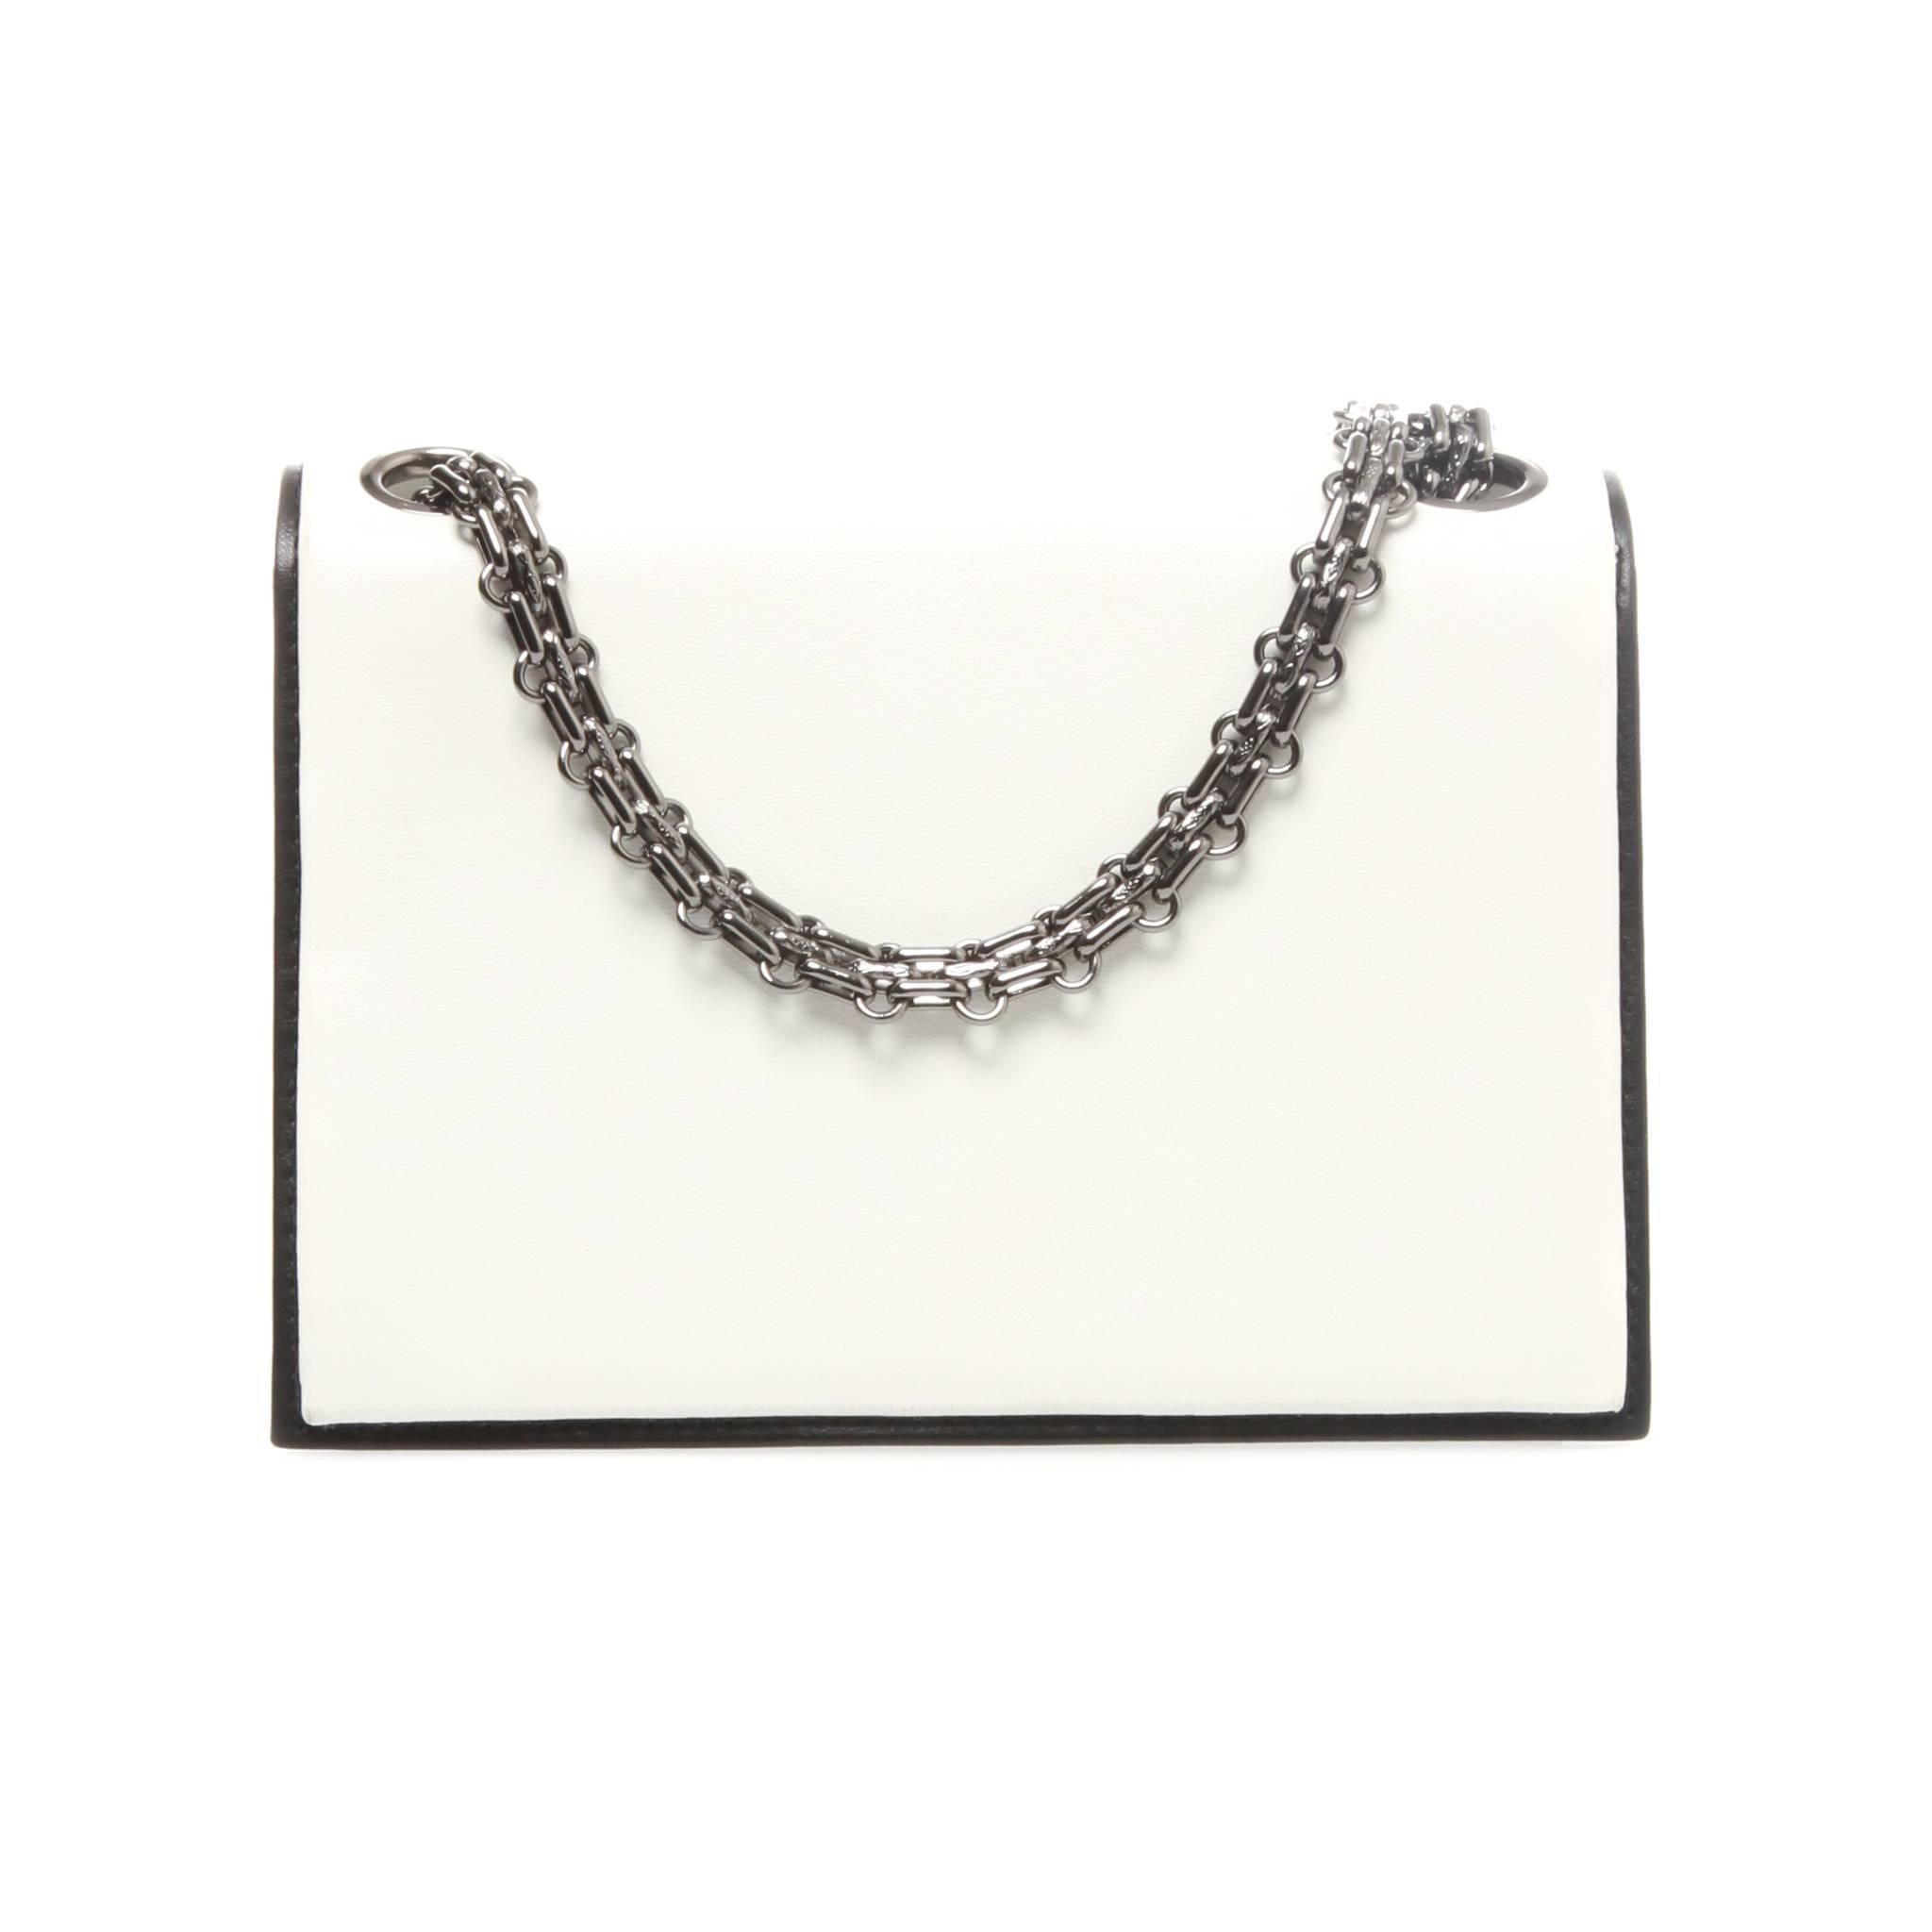 04ff11c1aaac7a Chanel Mini Reissue Flap Bag For Sale at 1stdibs